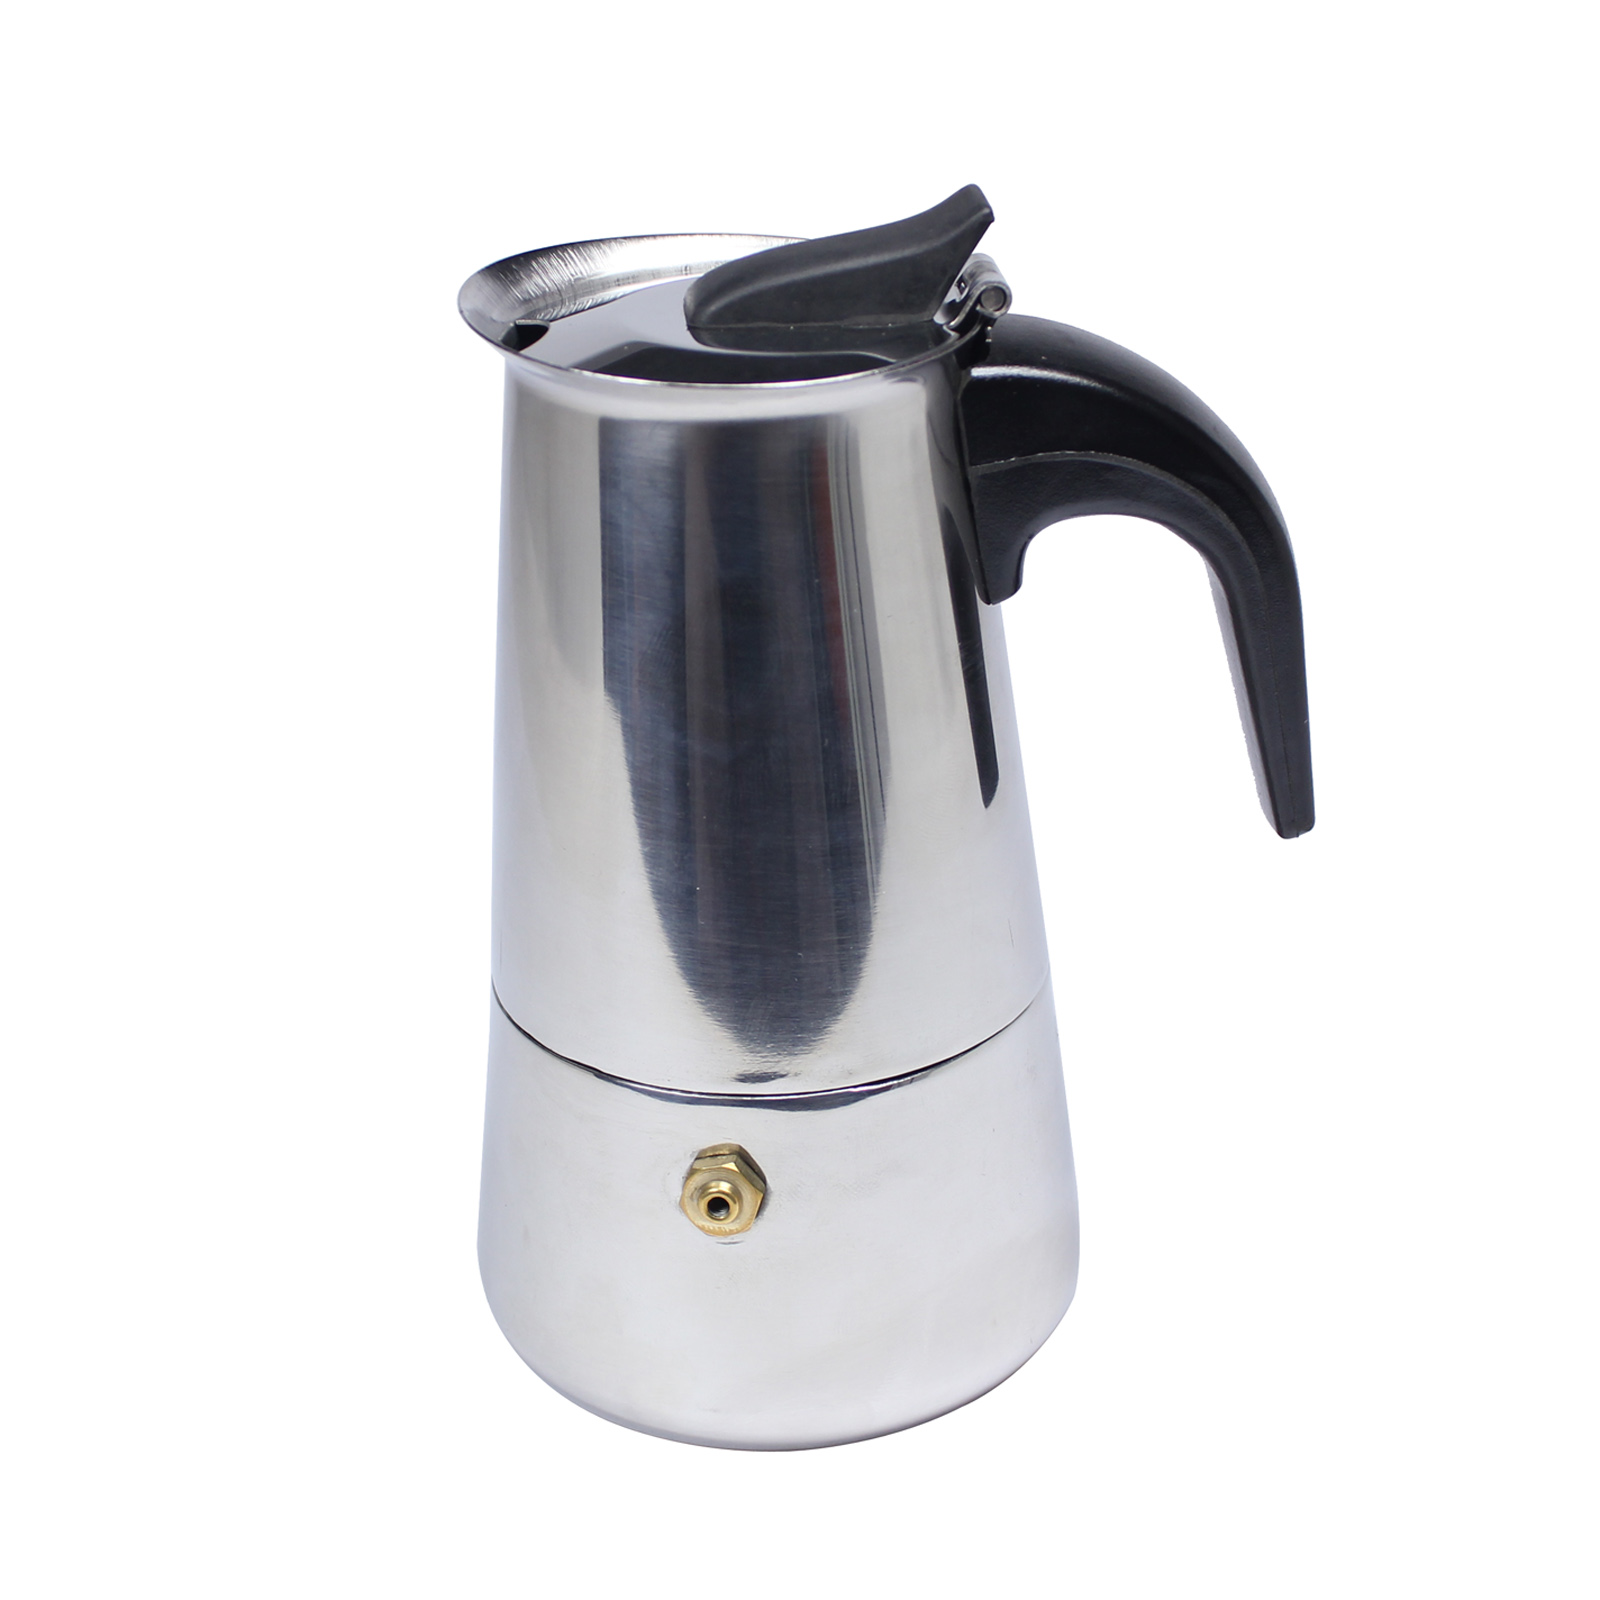 100ml italian espresso coffee maker stainless steel moka pot hj360a aud 13 68 picclick au